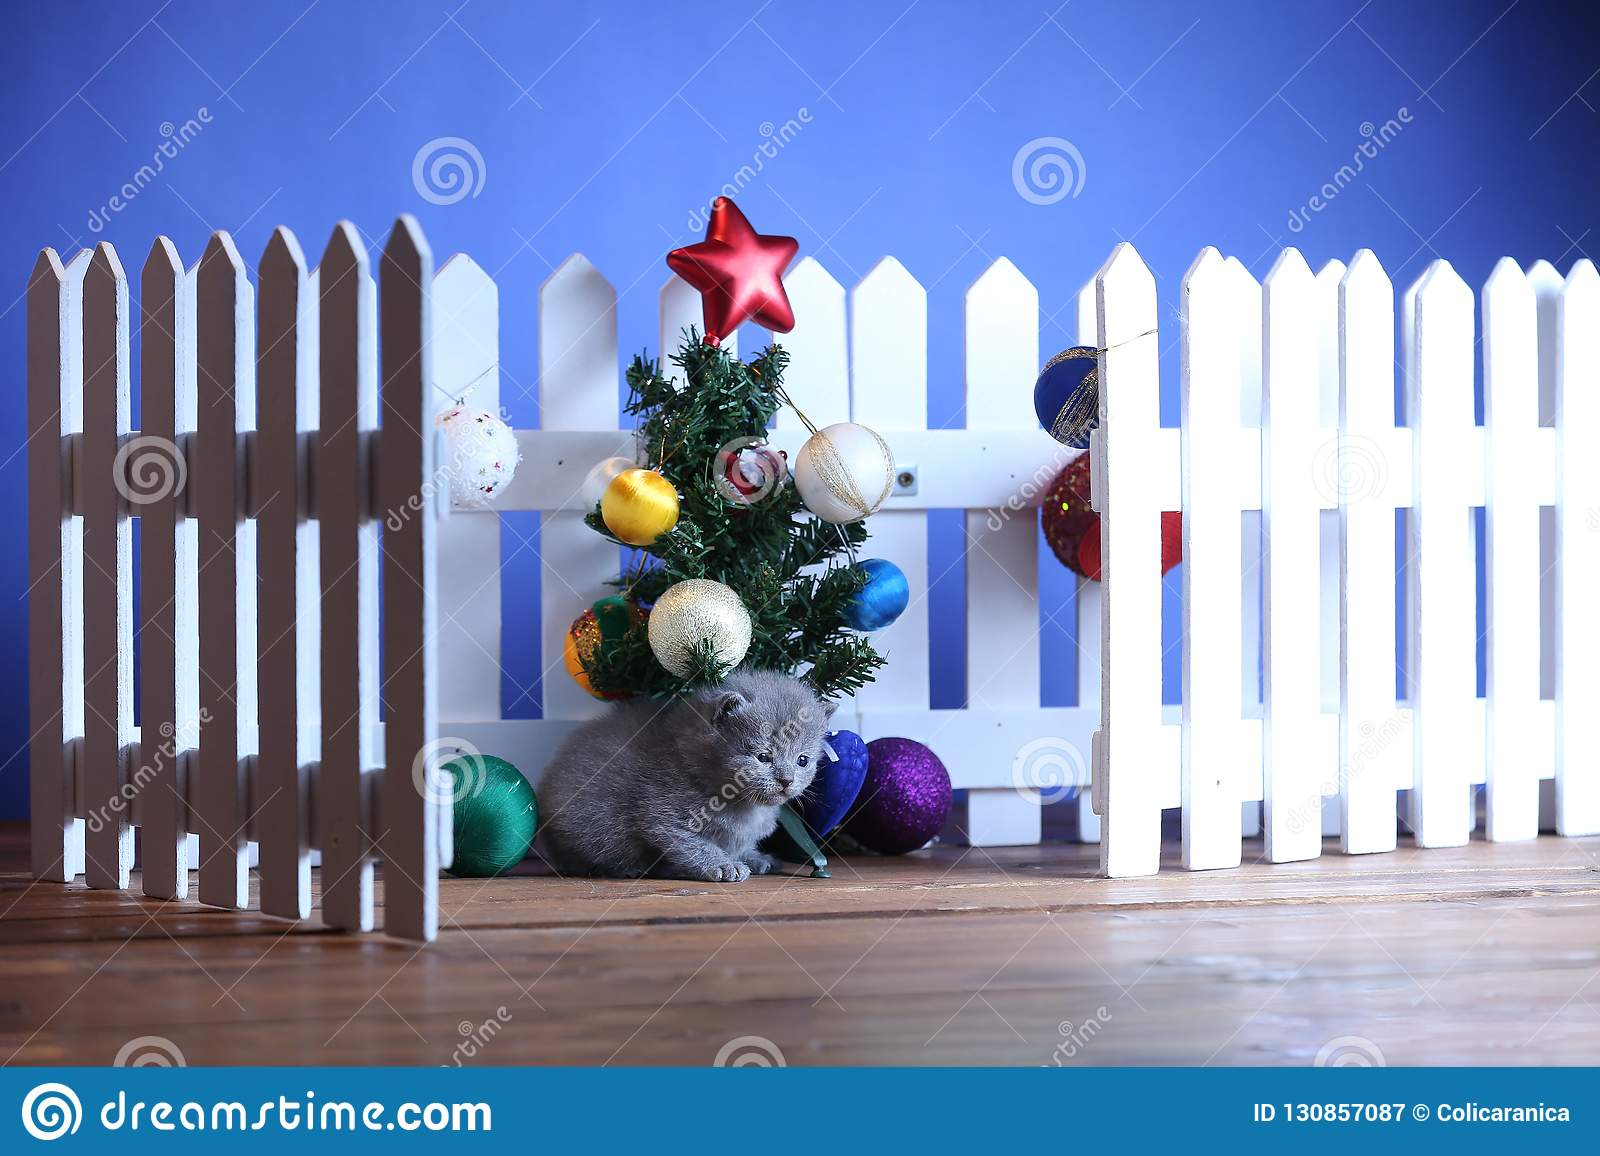 Small Kittens And Christmas Decorations Stock Image Image Of Small